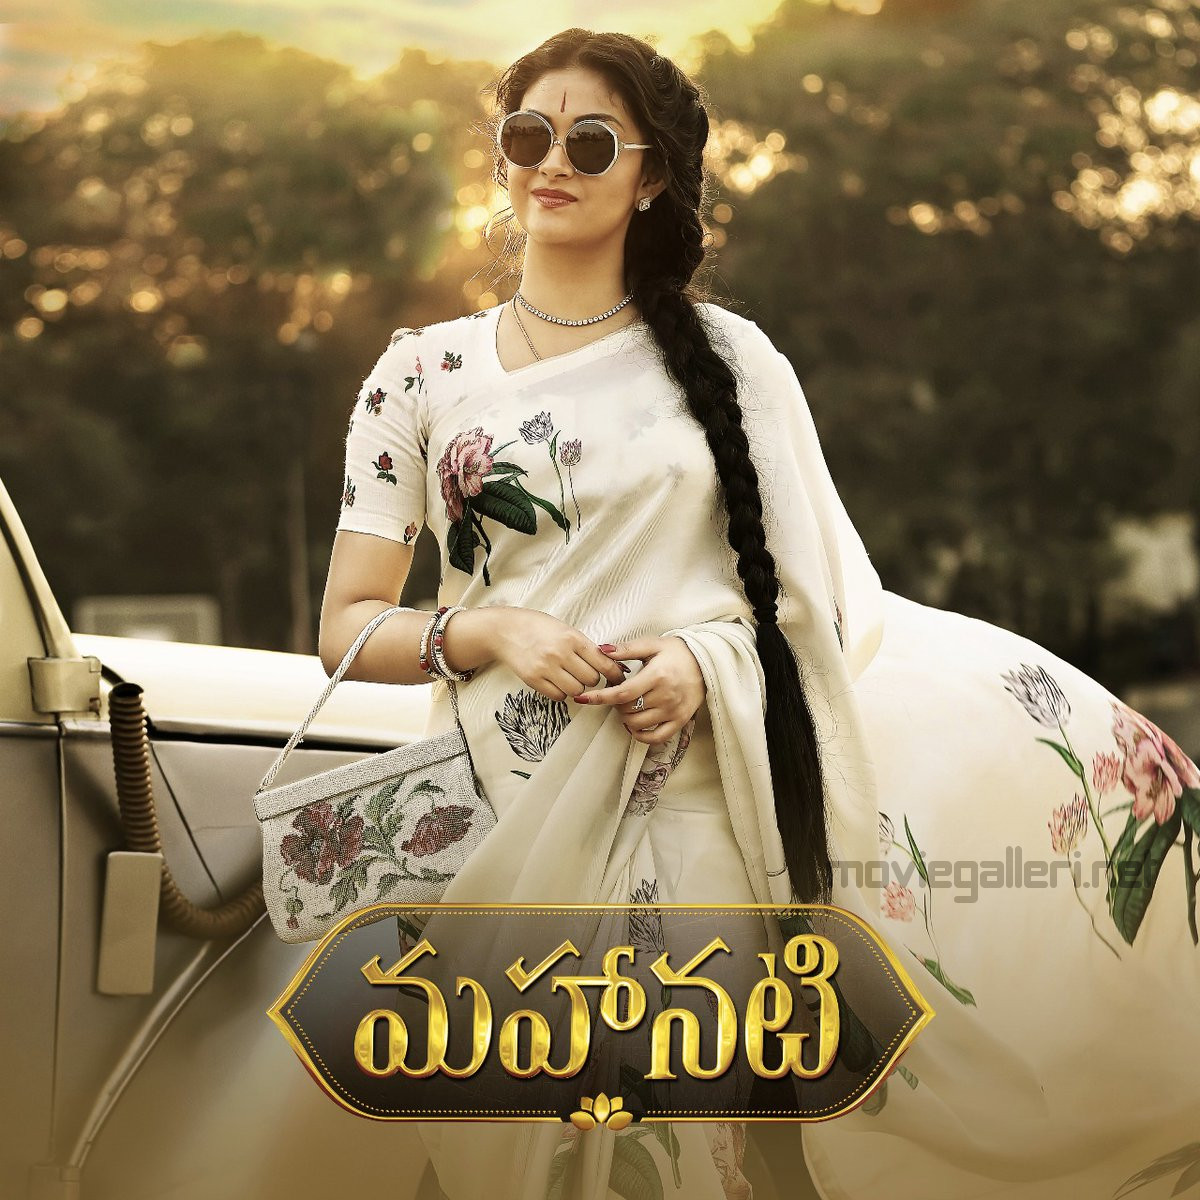 Actress Keerthy Suresh as Savitri From Mahanati Movie New Poster